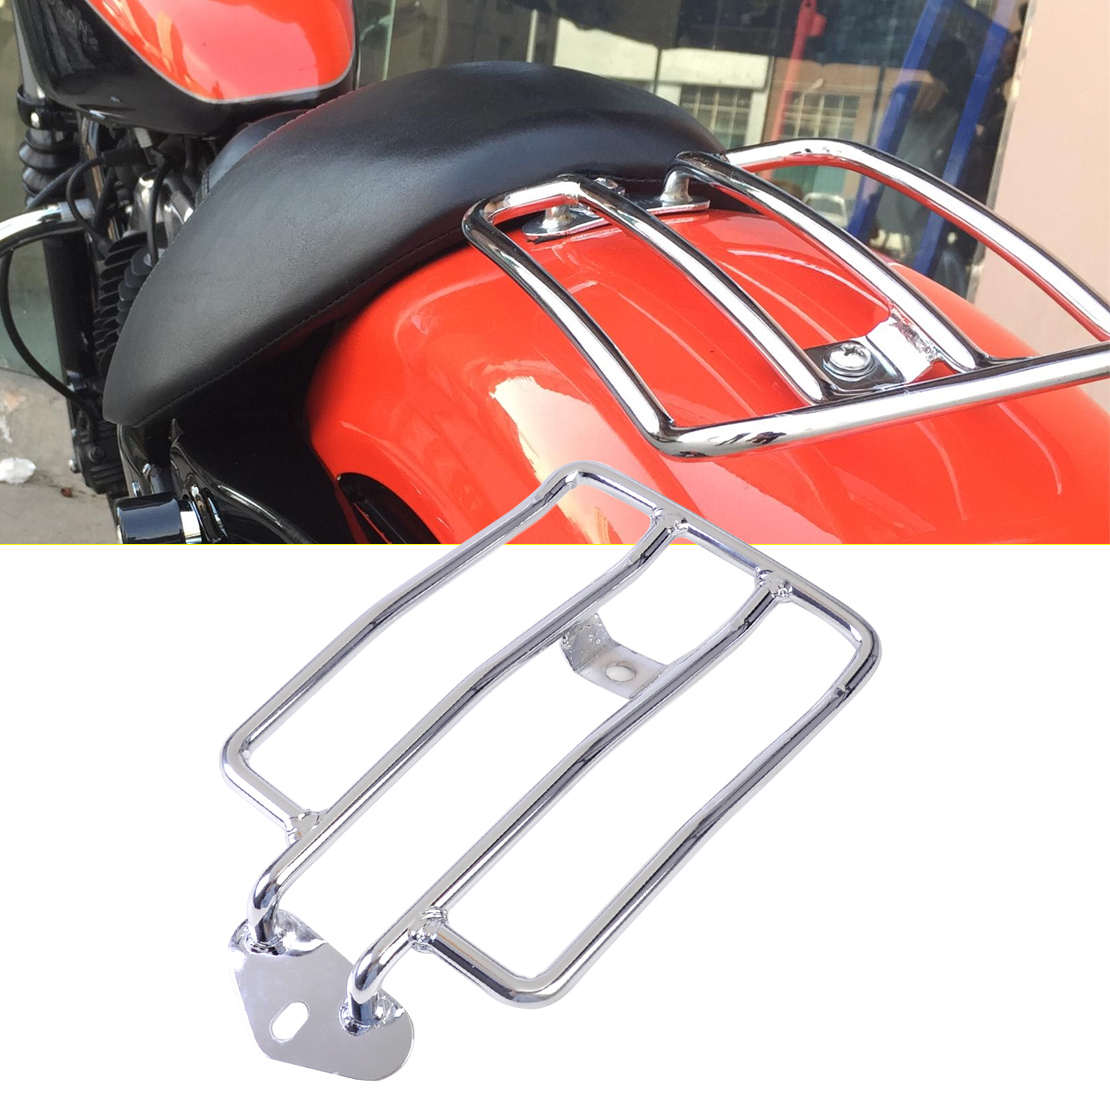 DWCX Motorcycle Silver Seat Luggage Shelf Carrier Support Rack for Harley Sportster 1200 883 with stock solo seat motorcycle solo seat luggage rack suitable for harley davidson sportster xl883 1200 48